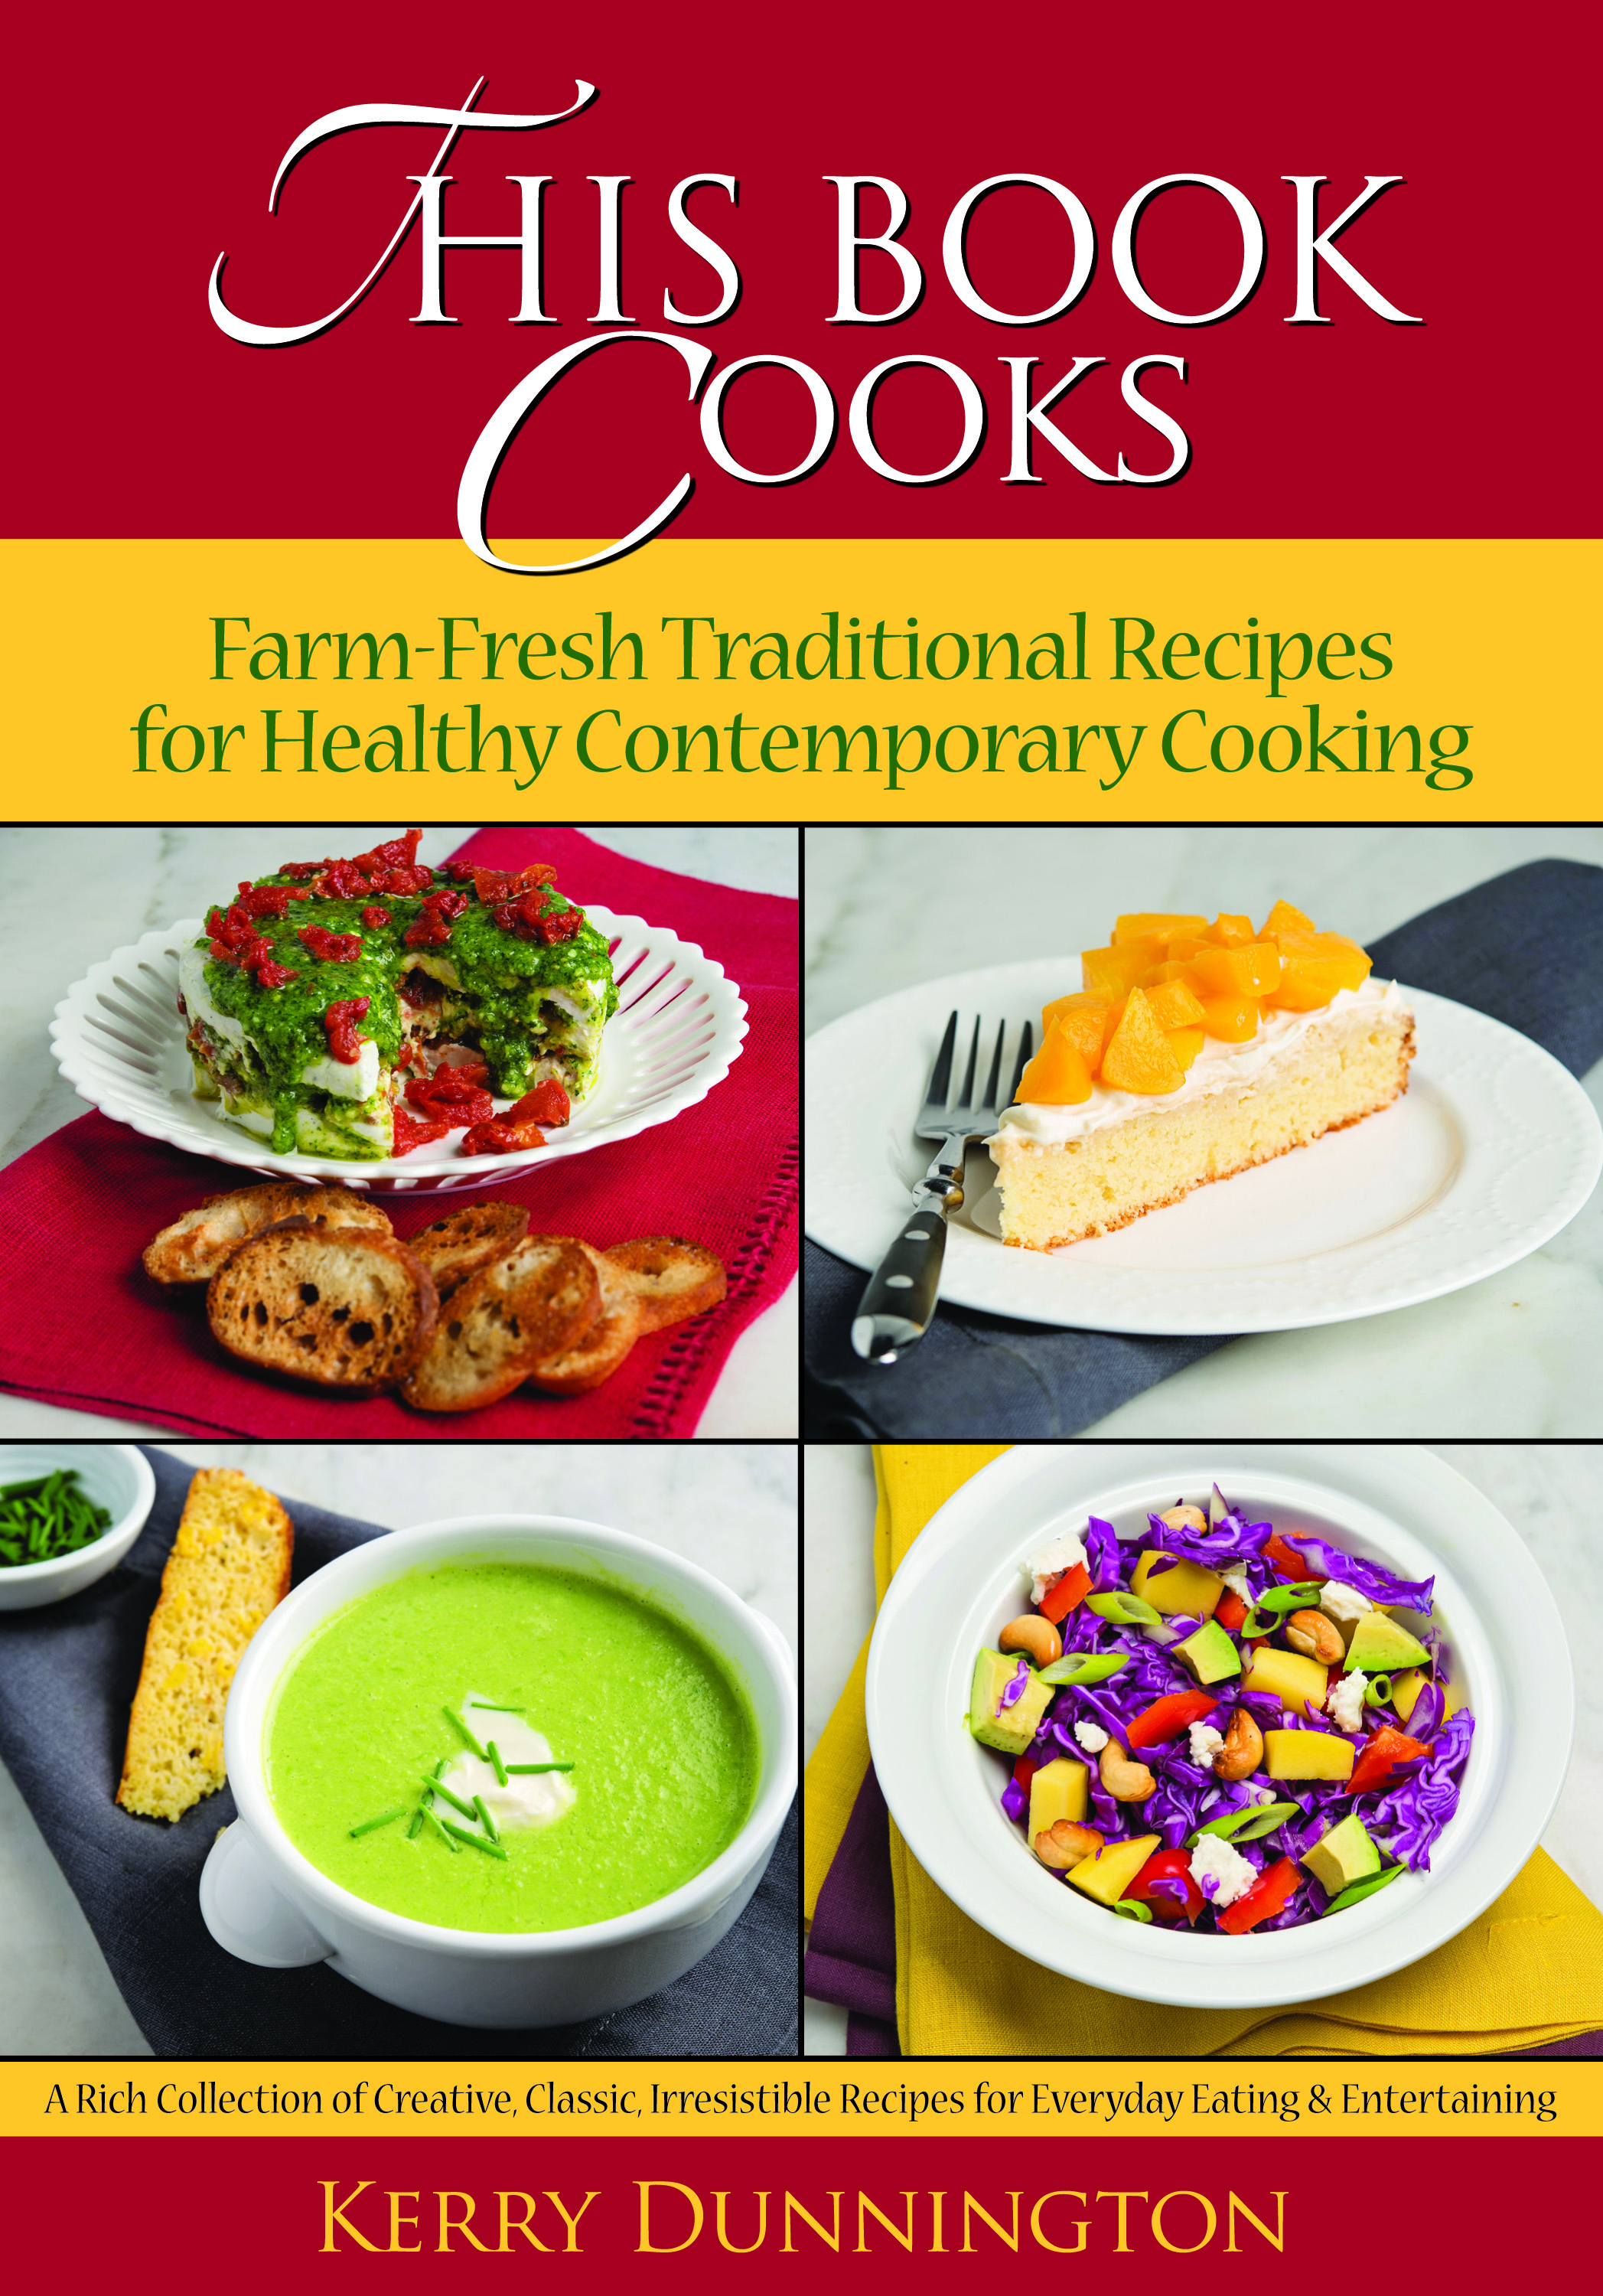 This Book Cooks: Farm-Fresh Traditional Recipes for Healthy Contemporary Cooking